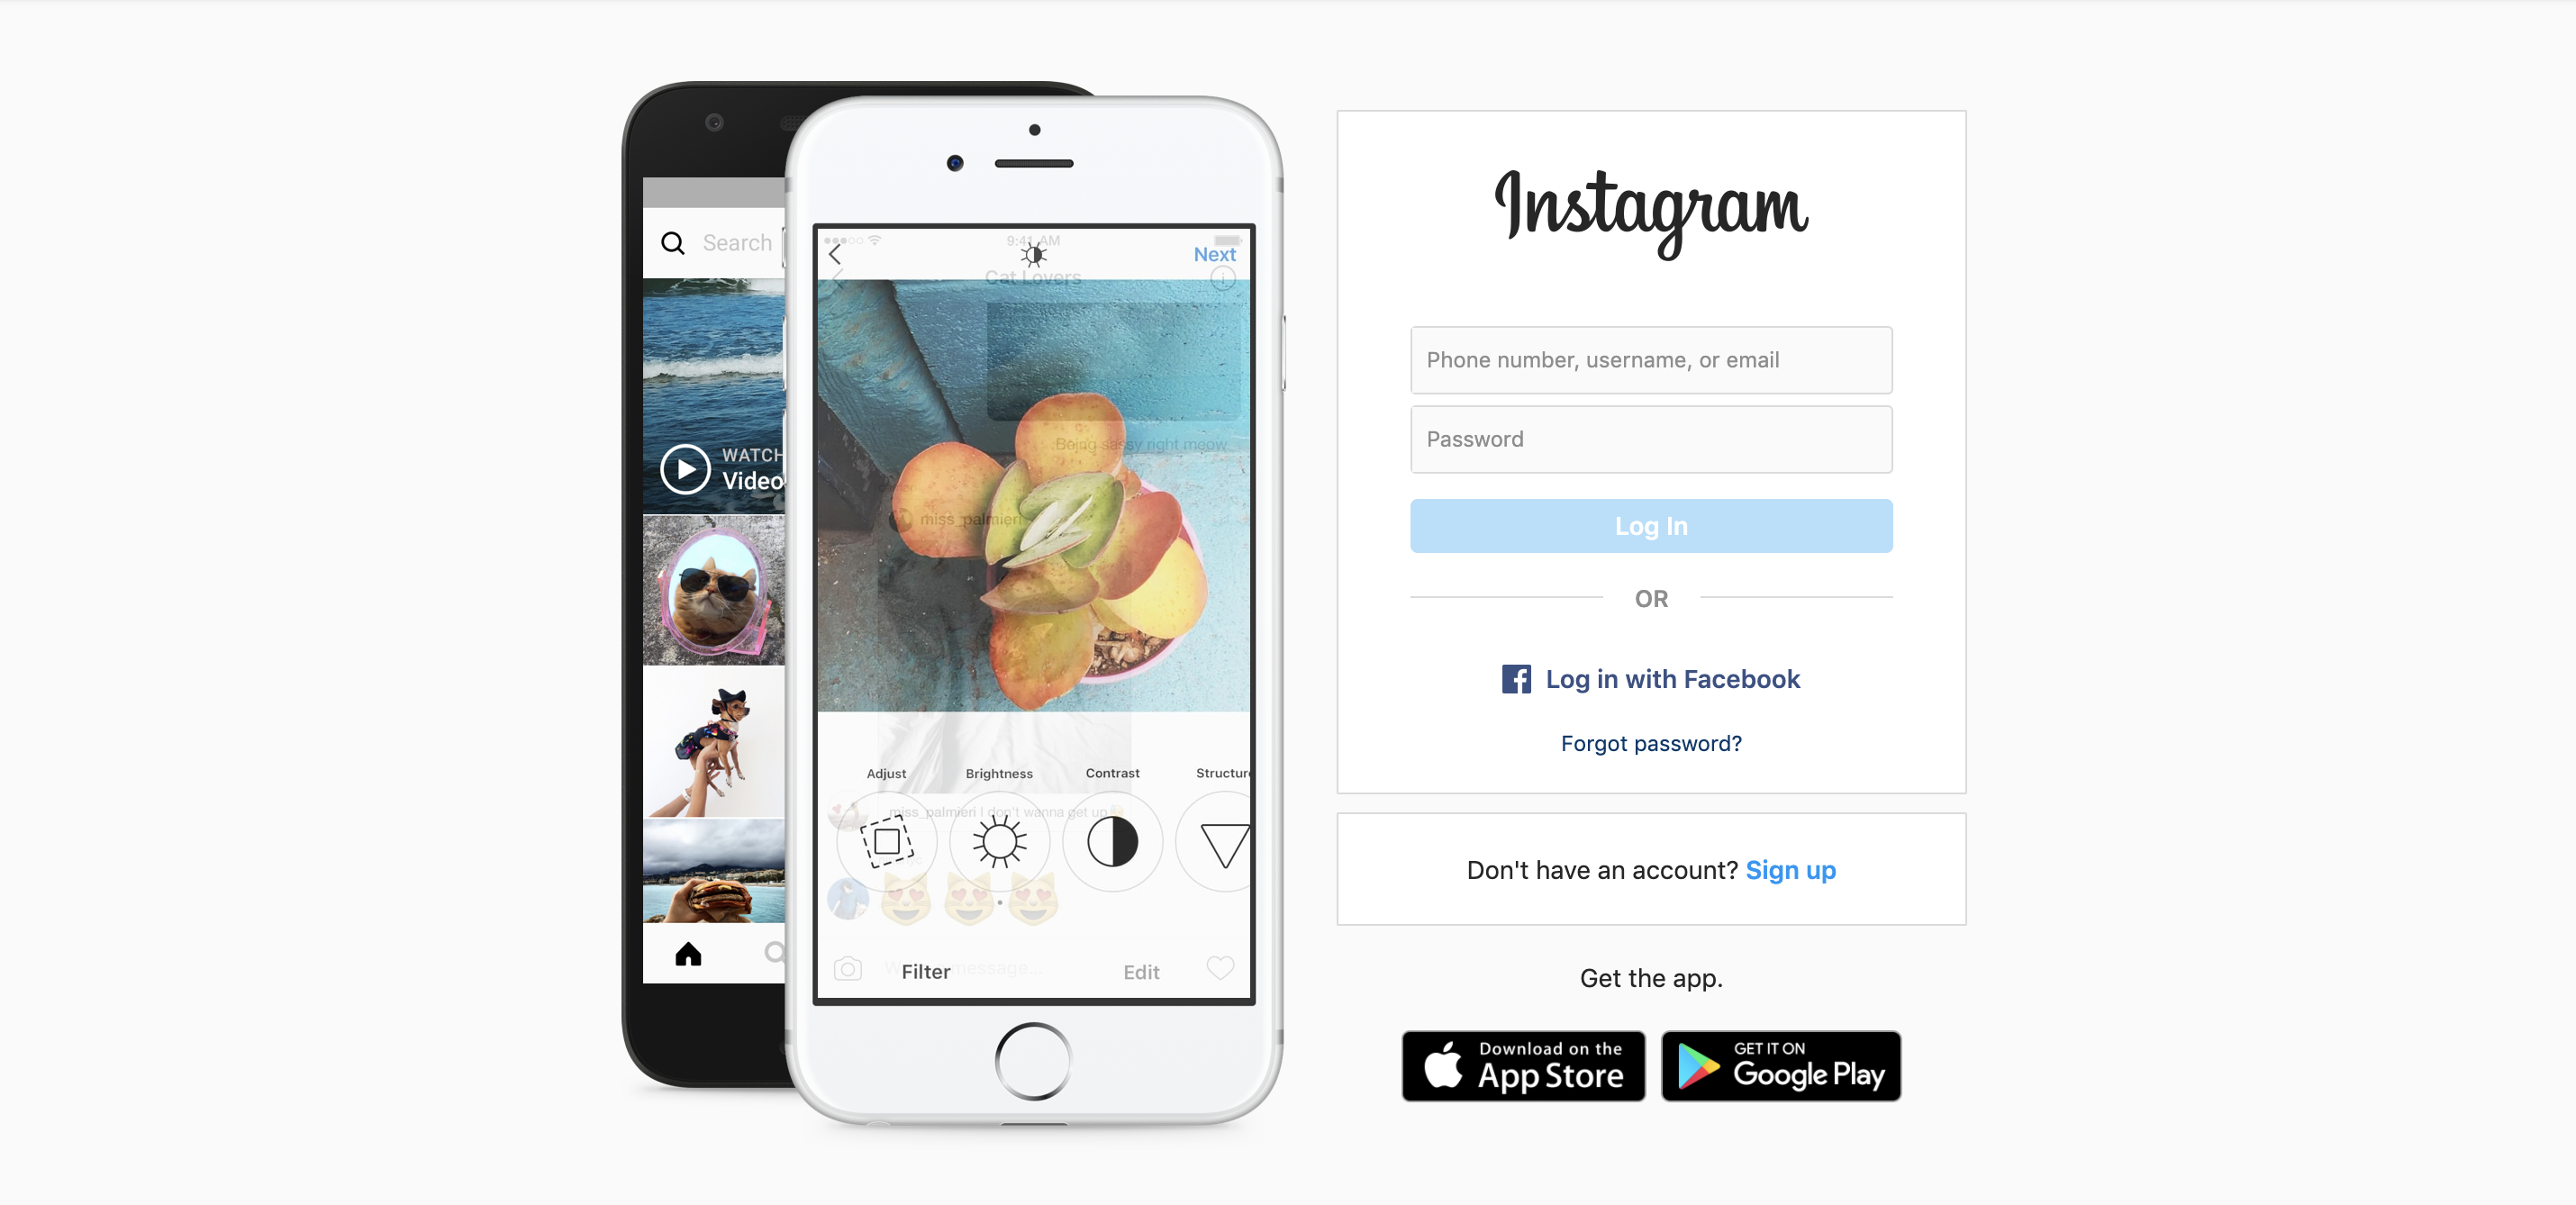 Instagram Sign up Page